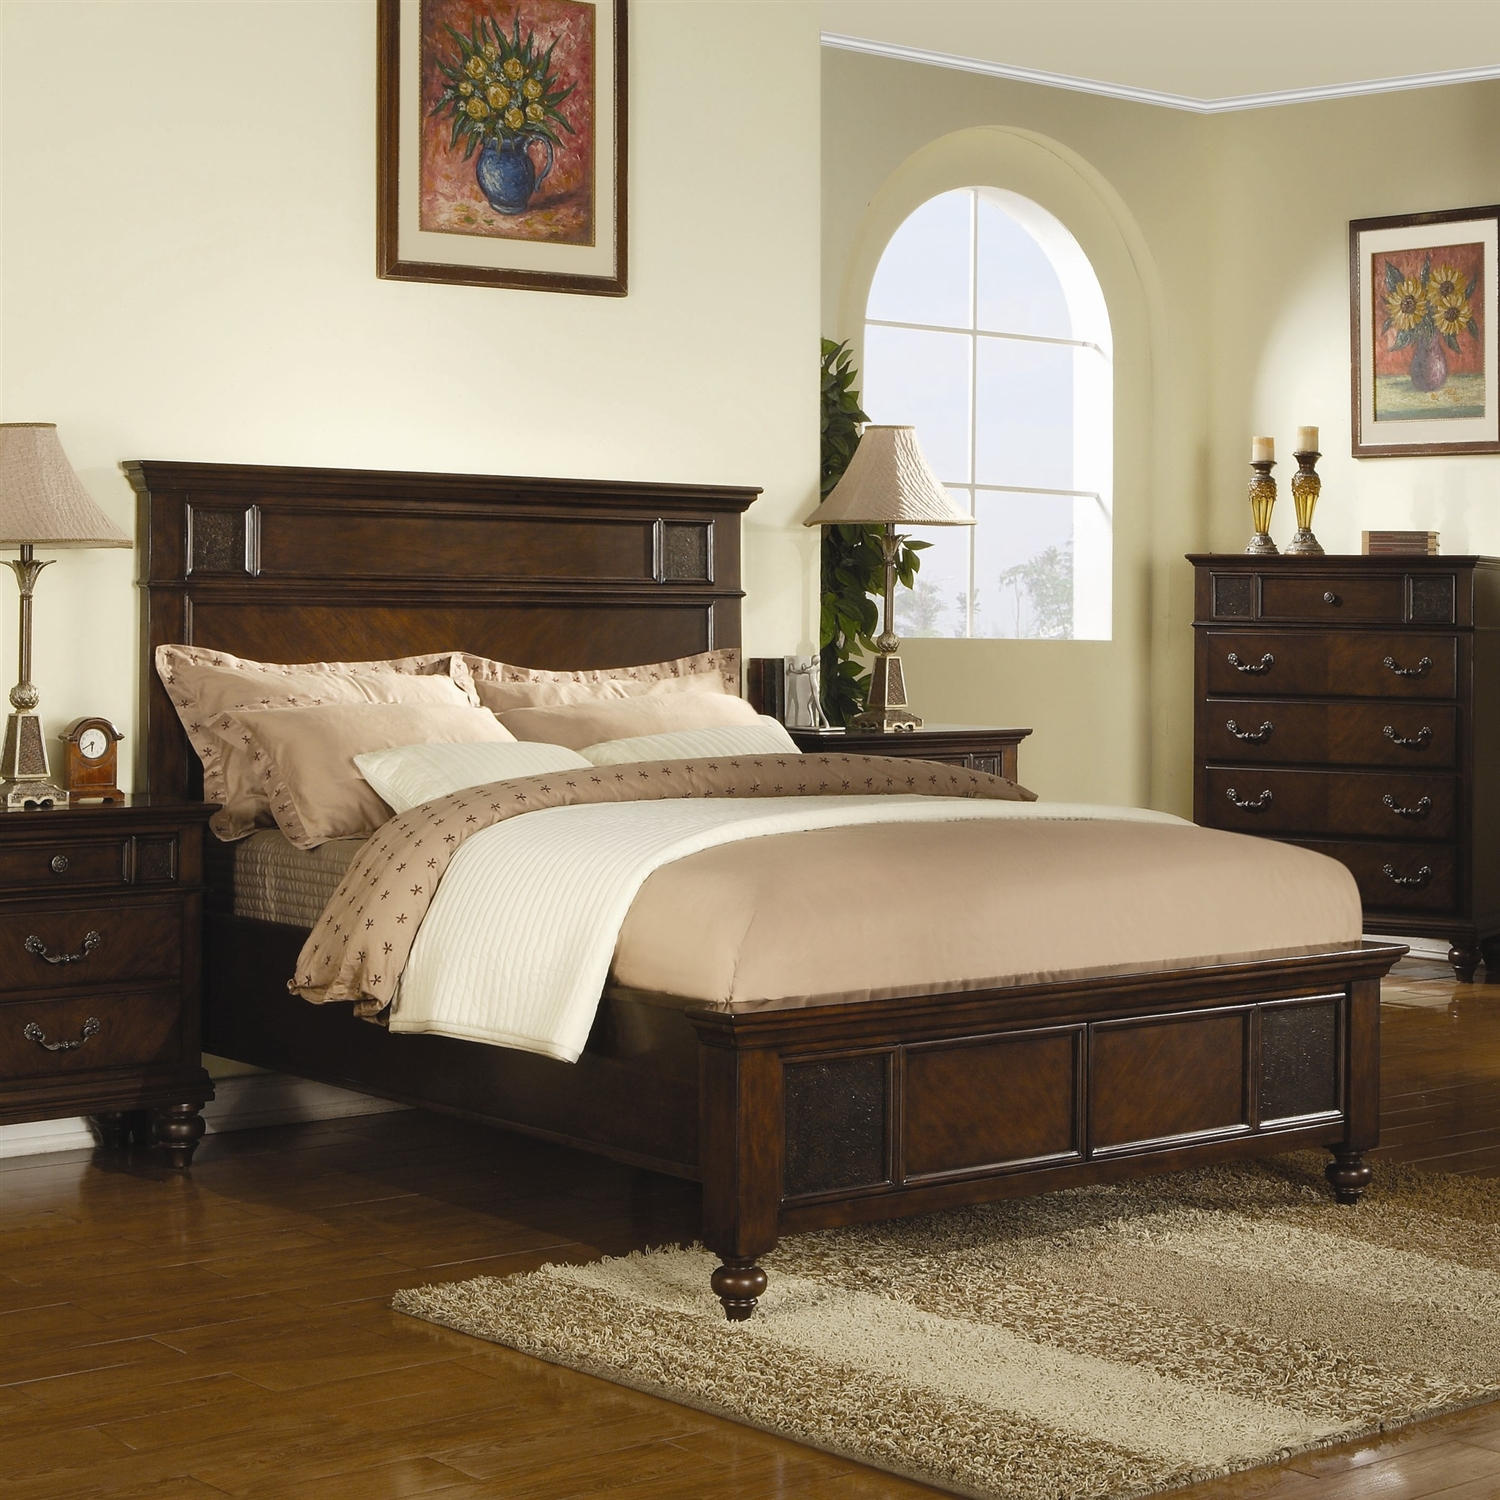 King Size Classic Neo Traditional Wood Bed In Dark Cherry Merlot Finish